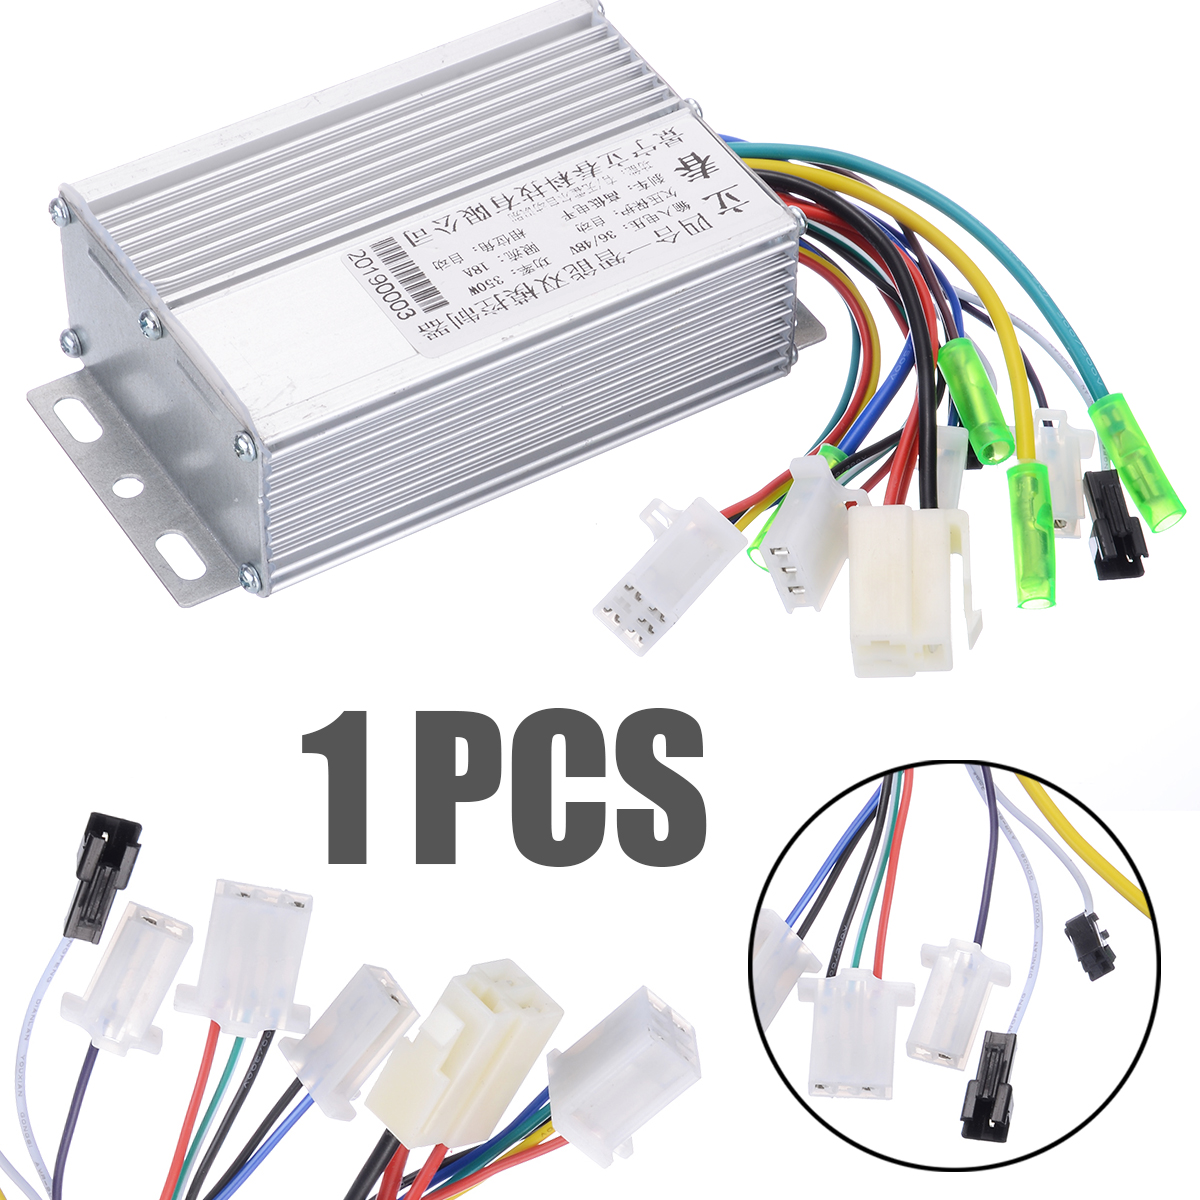 New 36V/48V 350W Brushless Motor Controller For Electric Bicycle E-bike Scooter Brushless DC Motor Controller